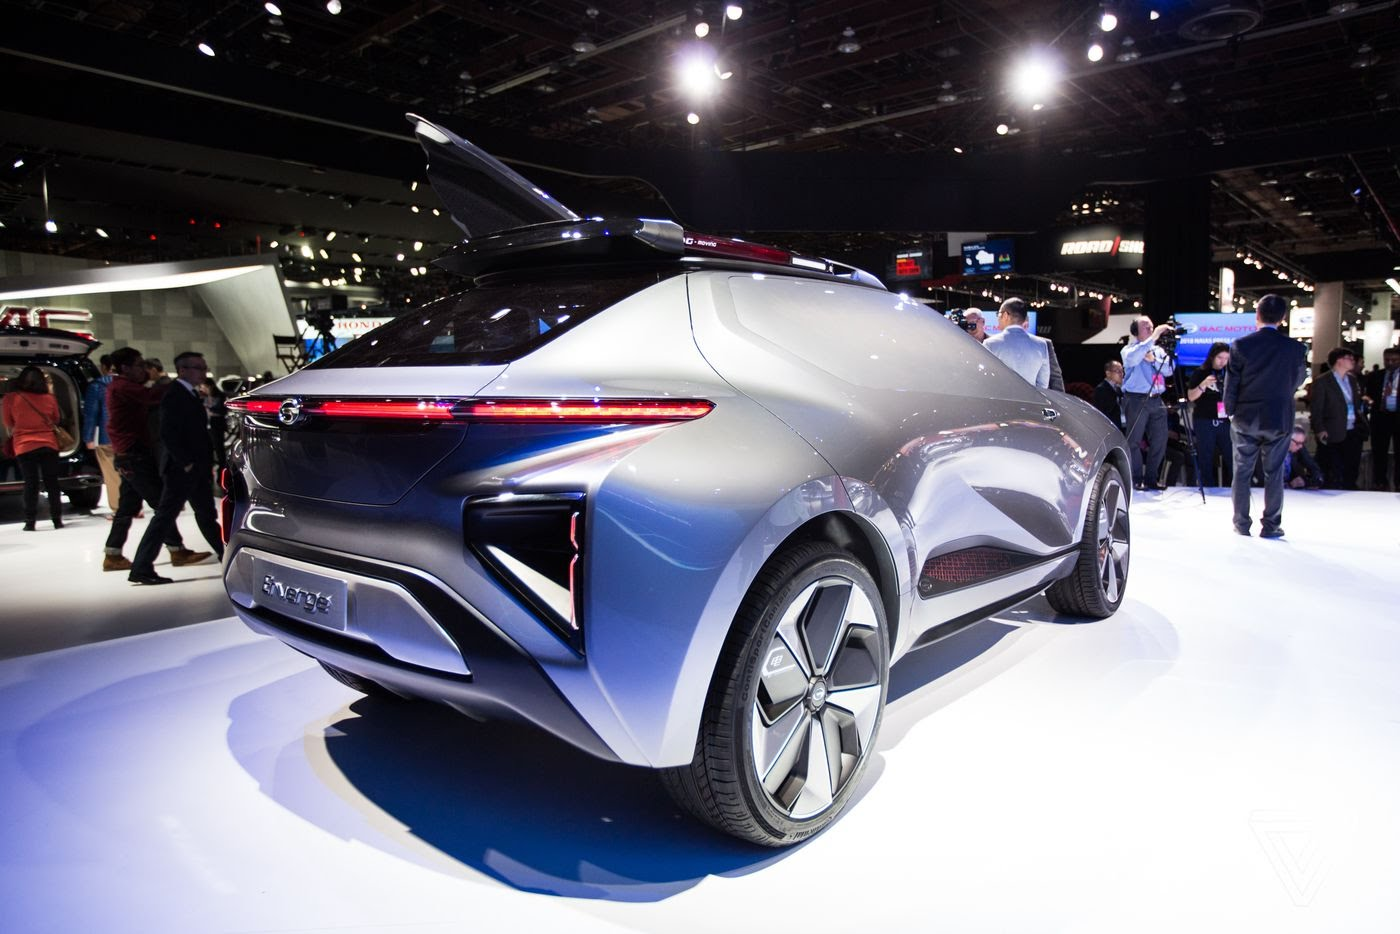 GAC Enverge electric concept car